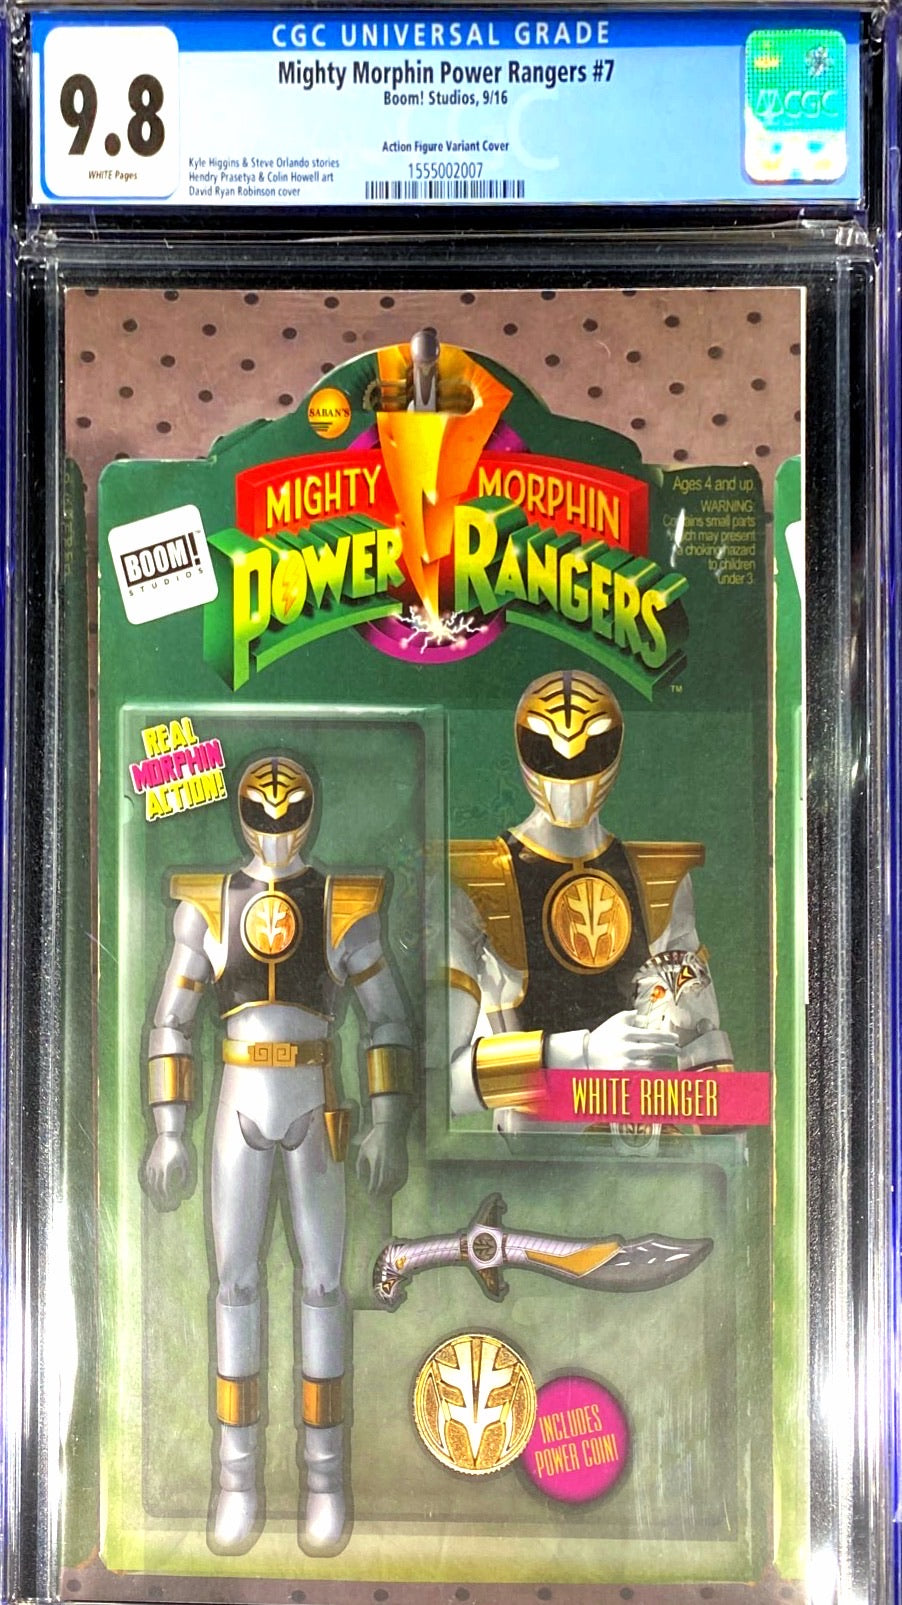 Mighty Morphin Power Rangers 7 CGC 9.8